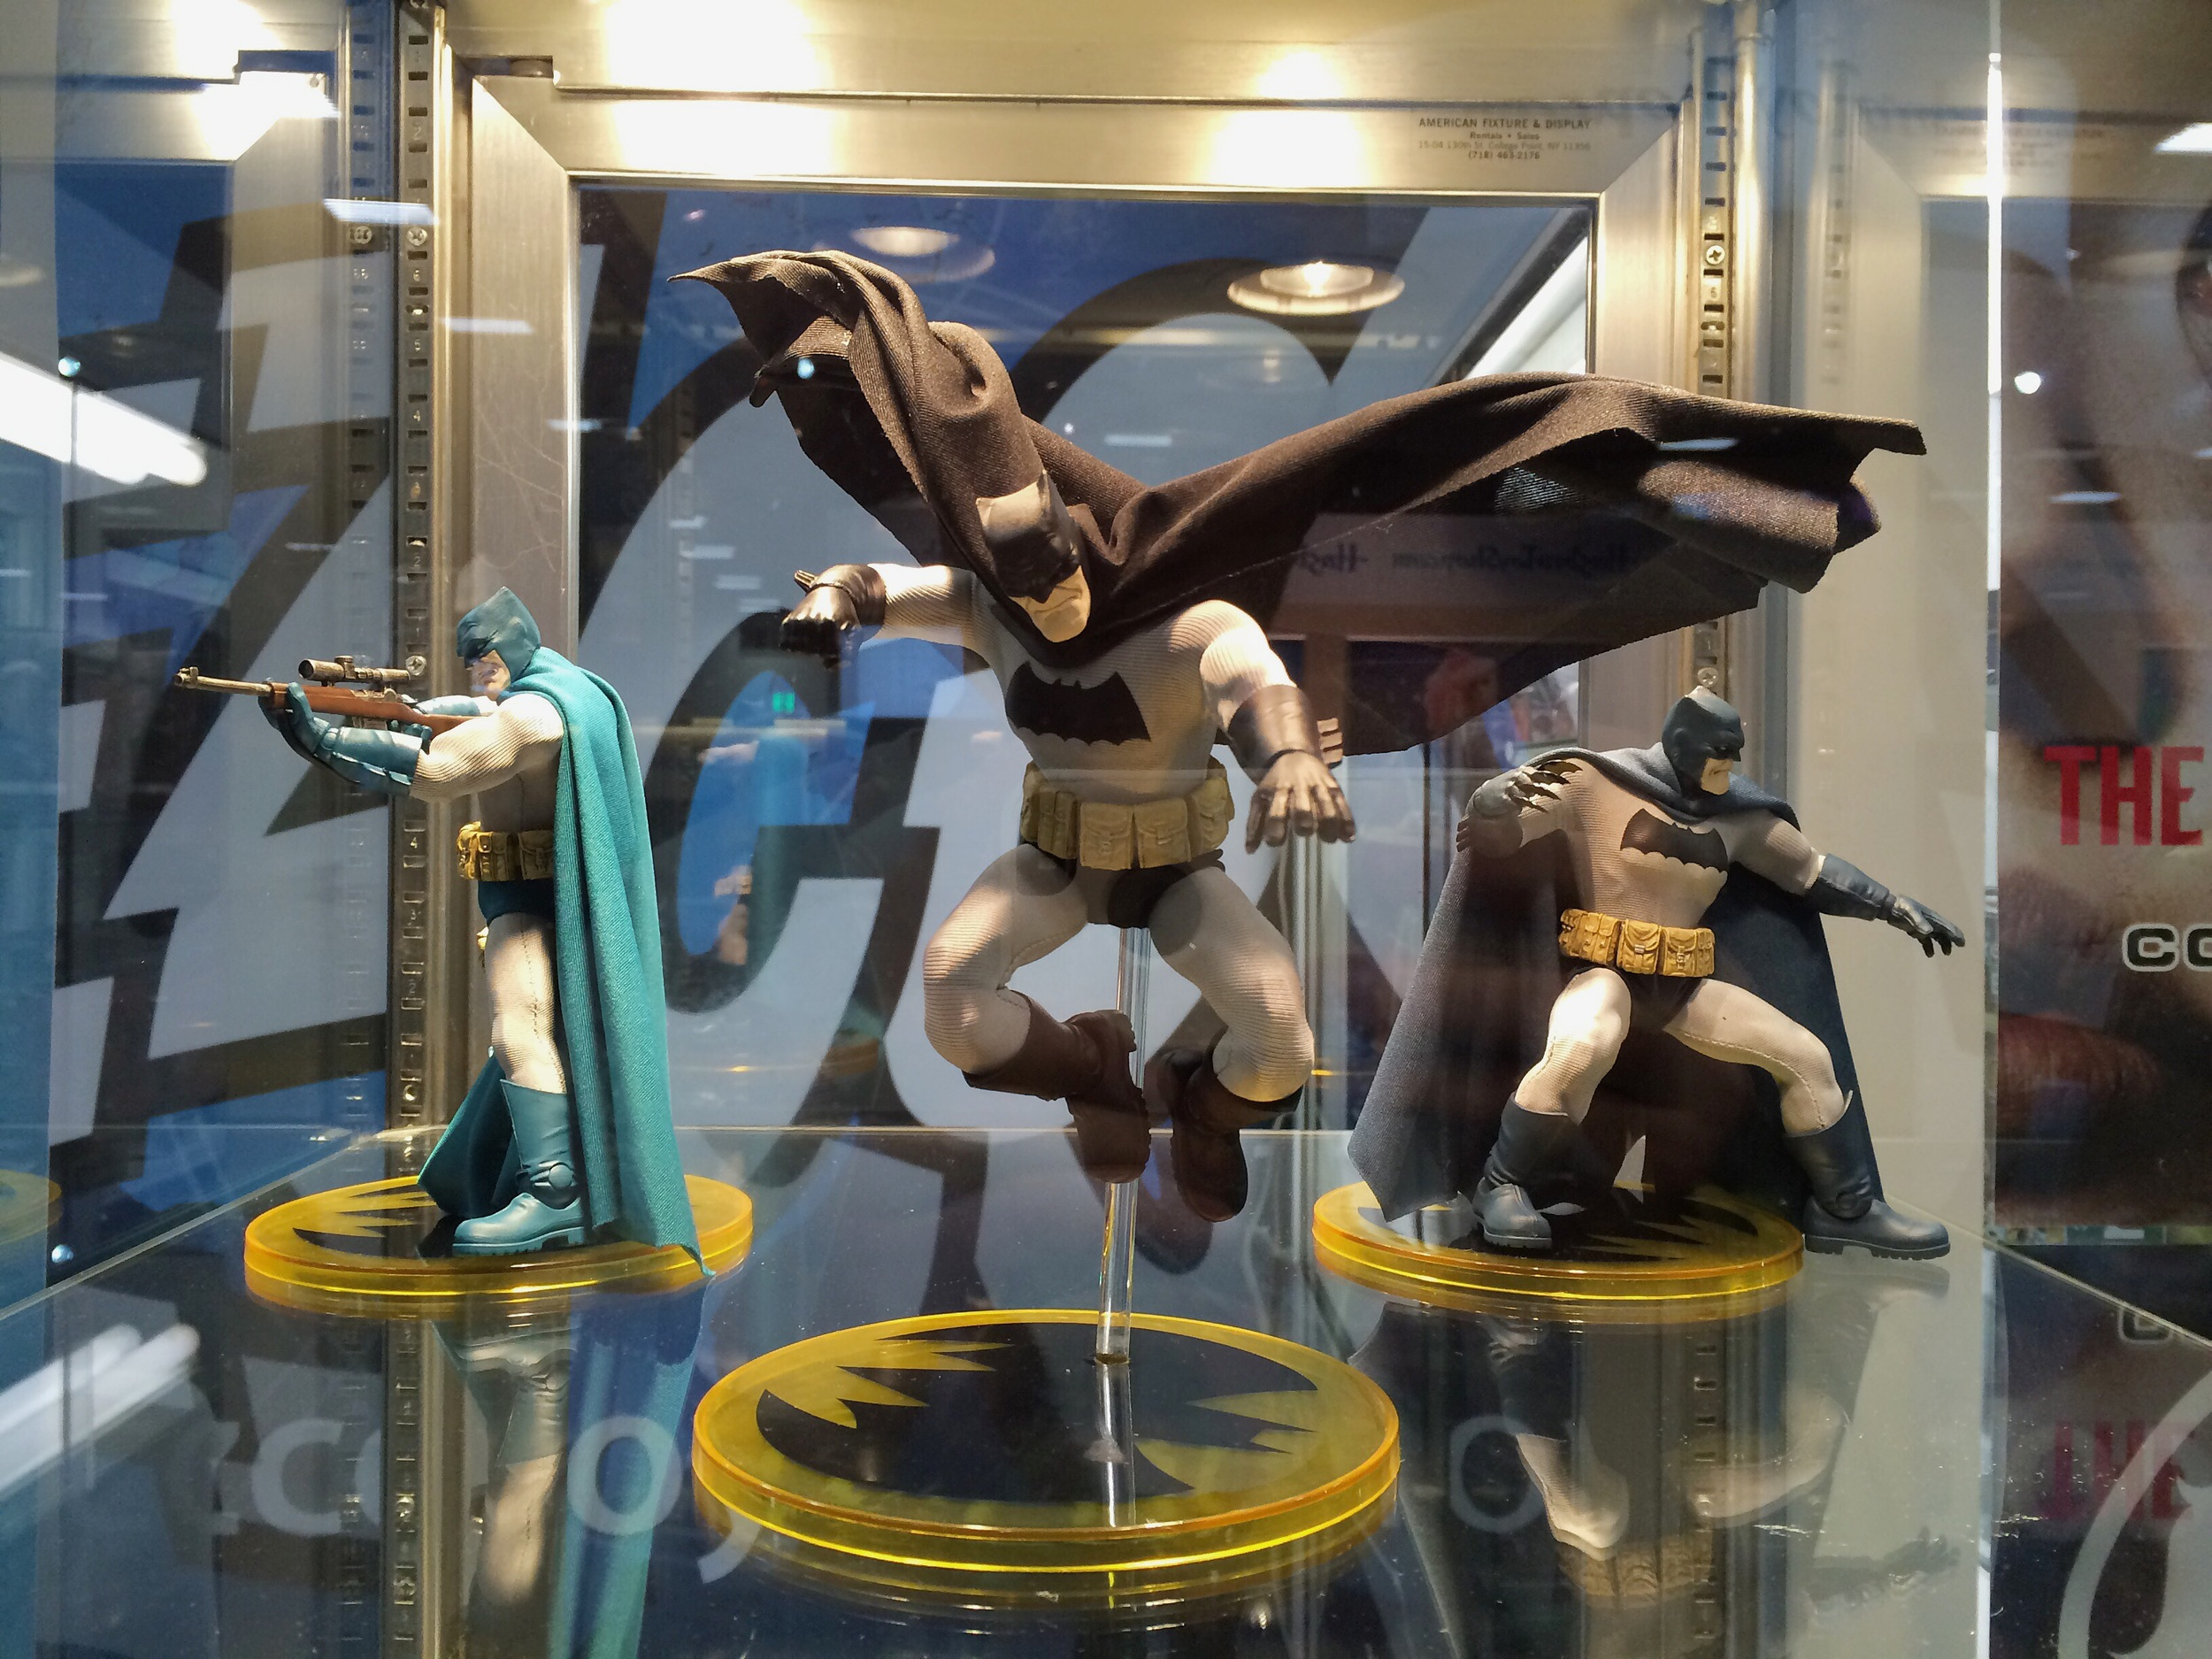 Mezco cooking up some killer Batman figures based off the Frank Miller designs from The Dark Knight Returns.